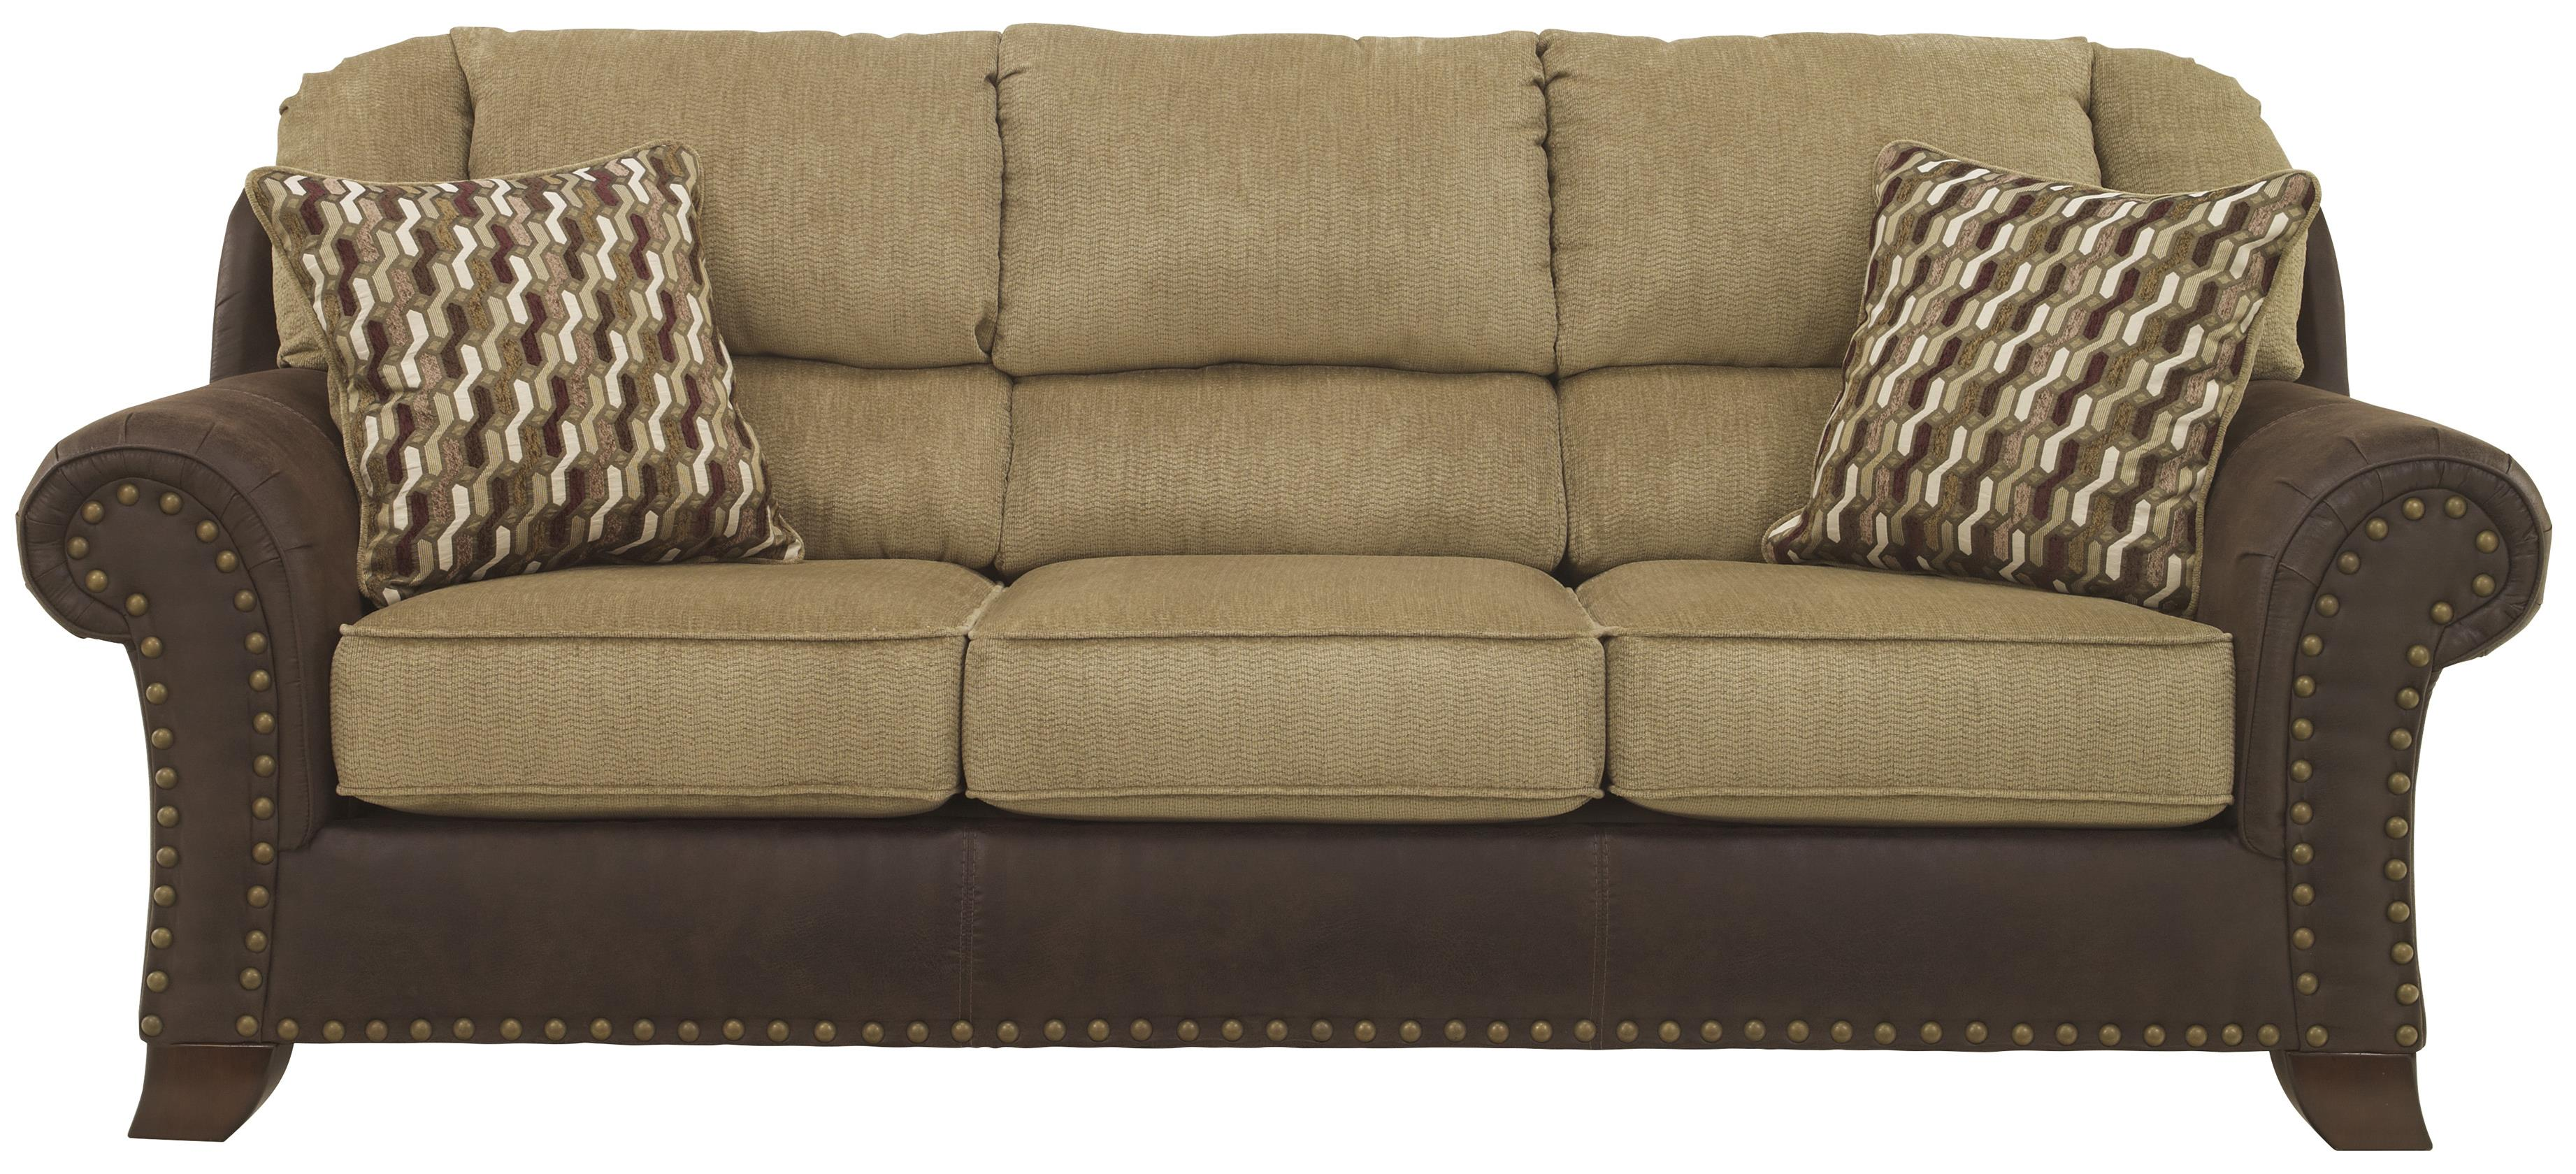 Two-Tone Sofa with Chenille Fabric/Faux Leather Upholstery by ...